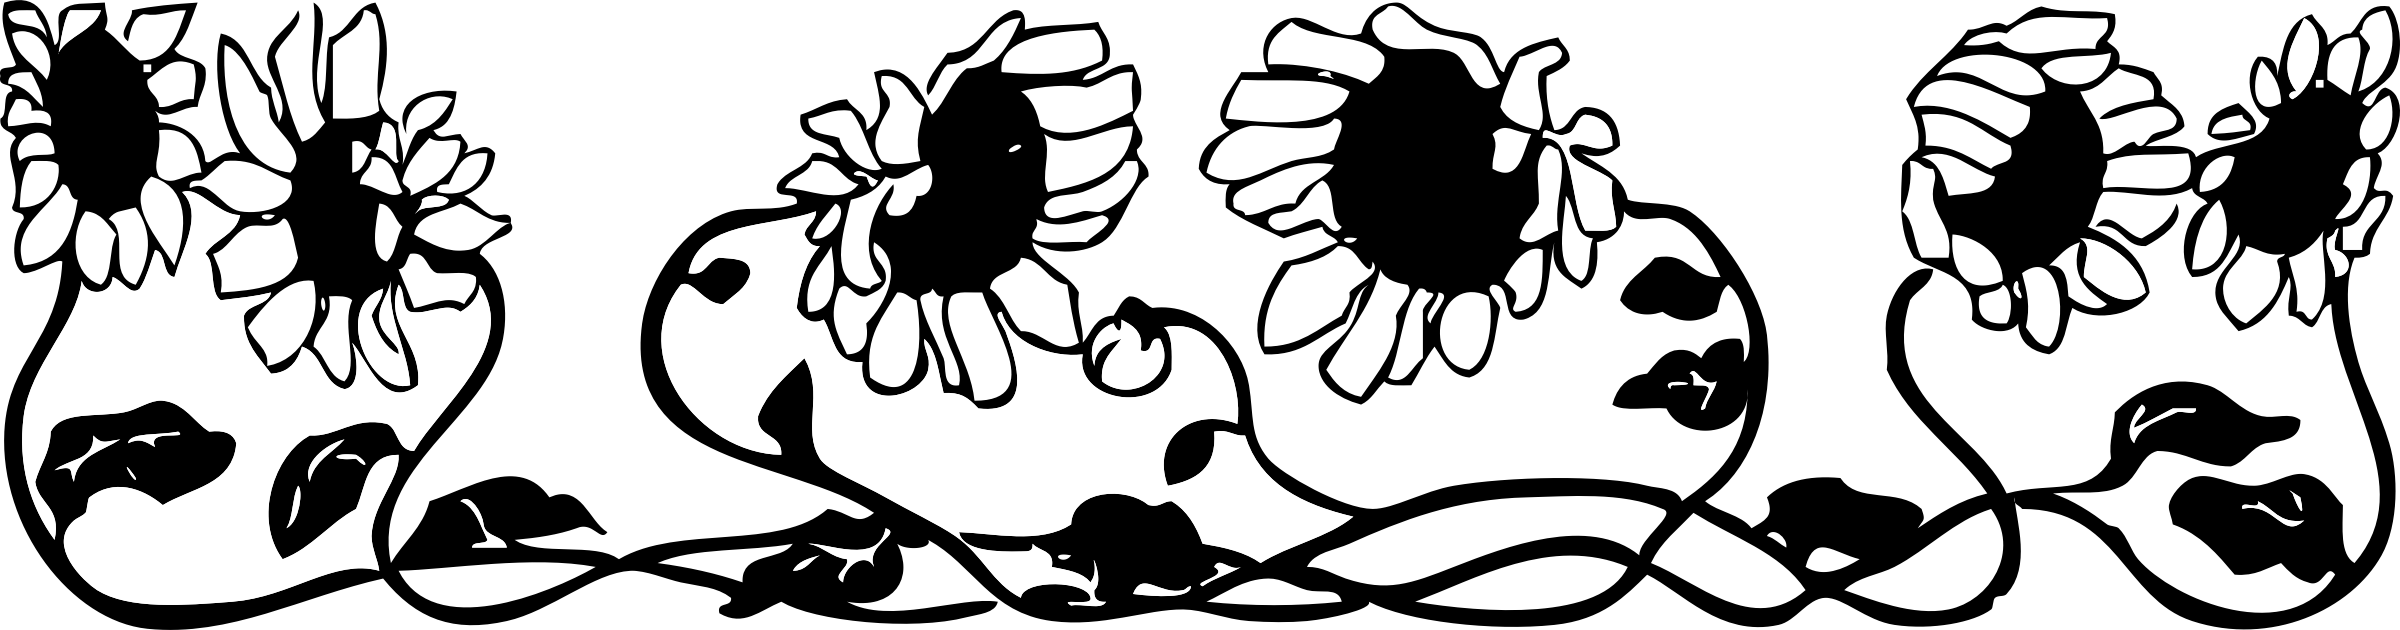 Clipart - sunflower border for Clipart Sunflower Black And White  146hul